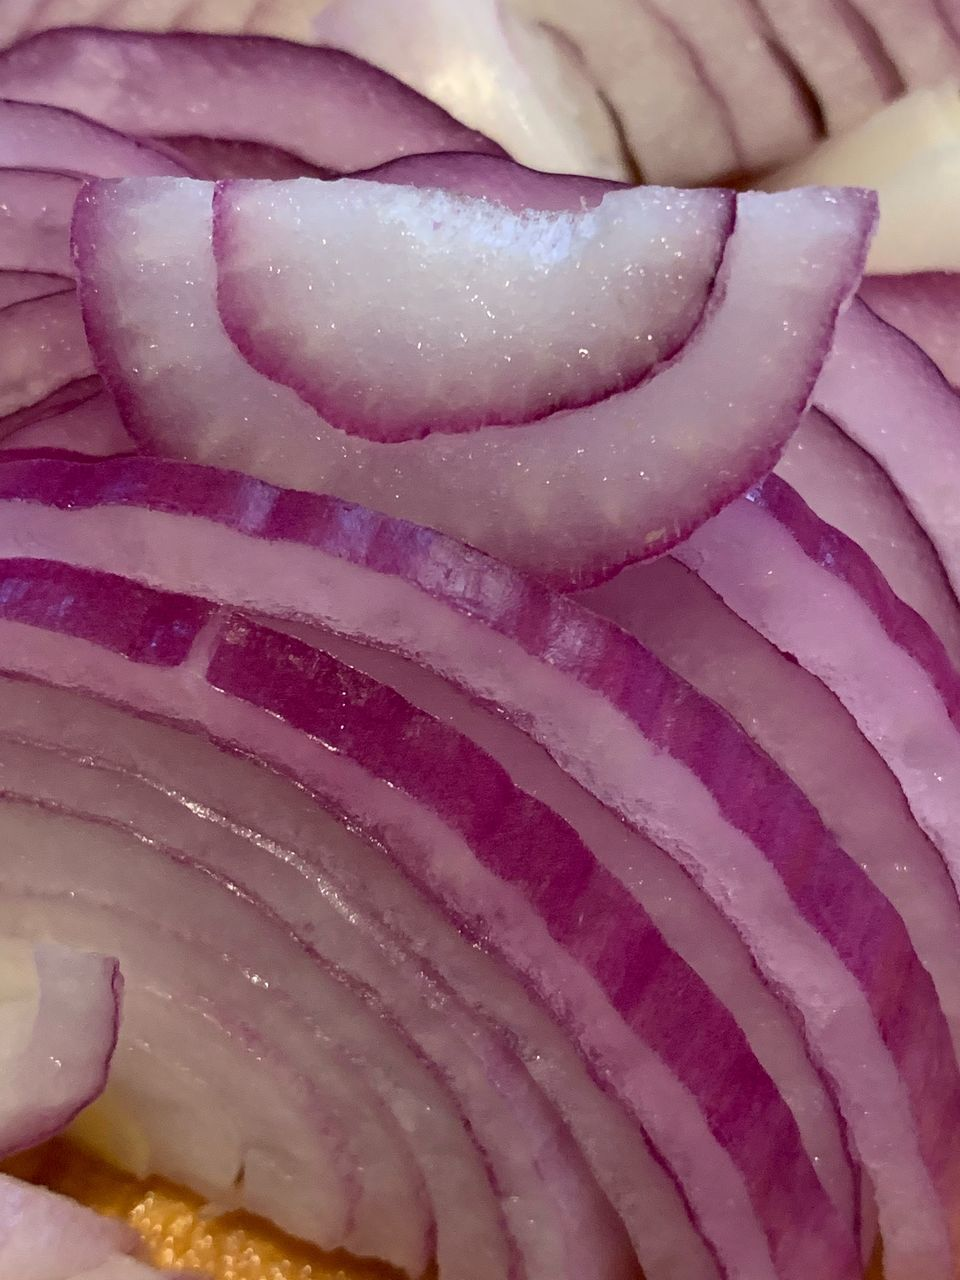 food and drink, food, freshness, close-up, indoors, healthy eating, no people, wellbeing, raw food, meat, pink color, seafood, still life, slice, octopus, ready-to-eat, full frame, fish, animal, vegetable, temptation, japanese food